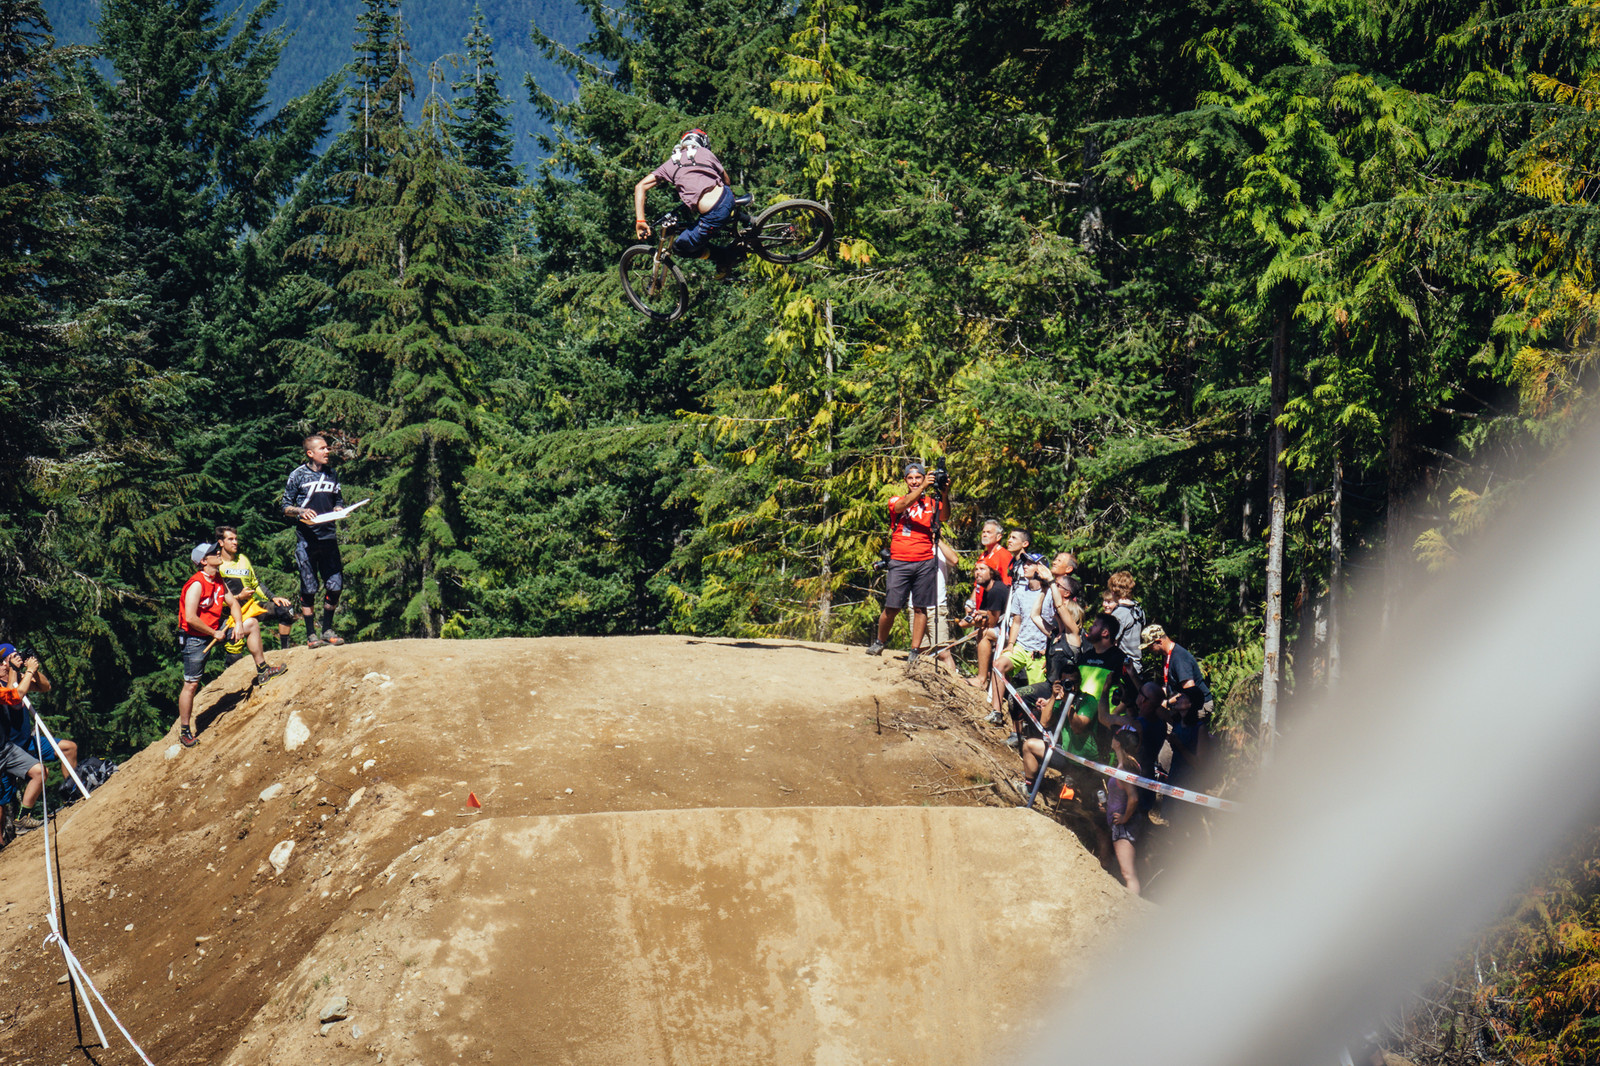 Cranked - Whip Off World Champs Qualifiers - Going for Broke: 14 Super Sideways Senders from Whip Off World Champs Qualifiers - Mountain Biking Pictures - Vital MTB